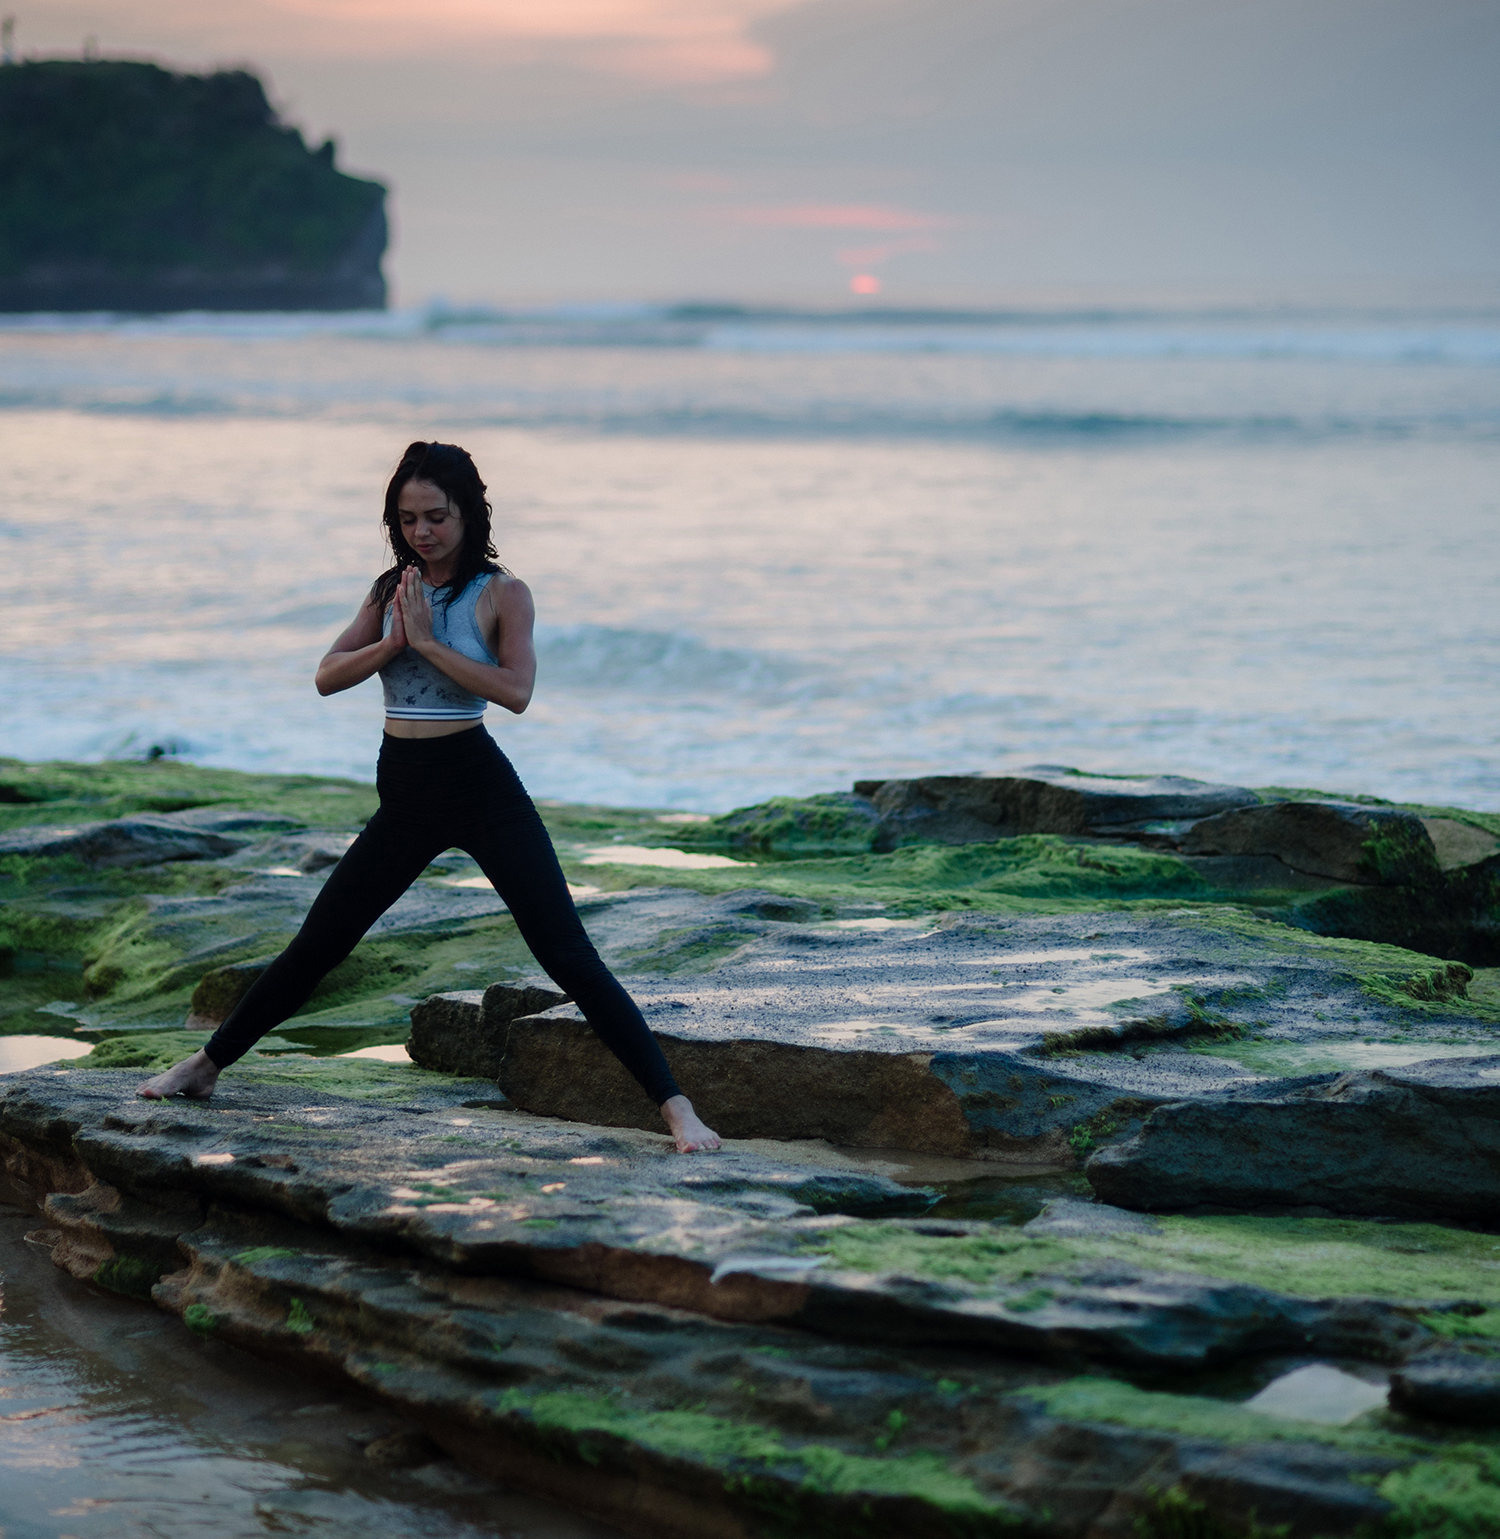 Woman Practicing Yoga In Nature High Quality Free Stock Images